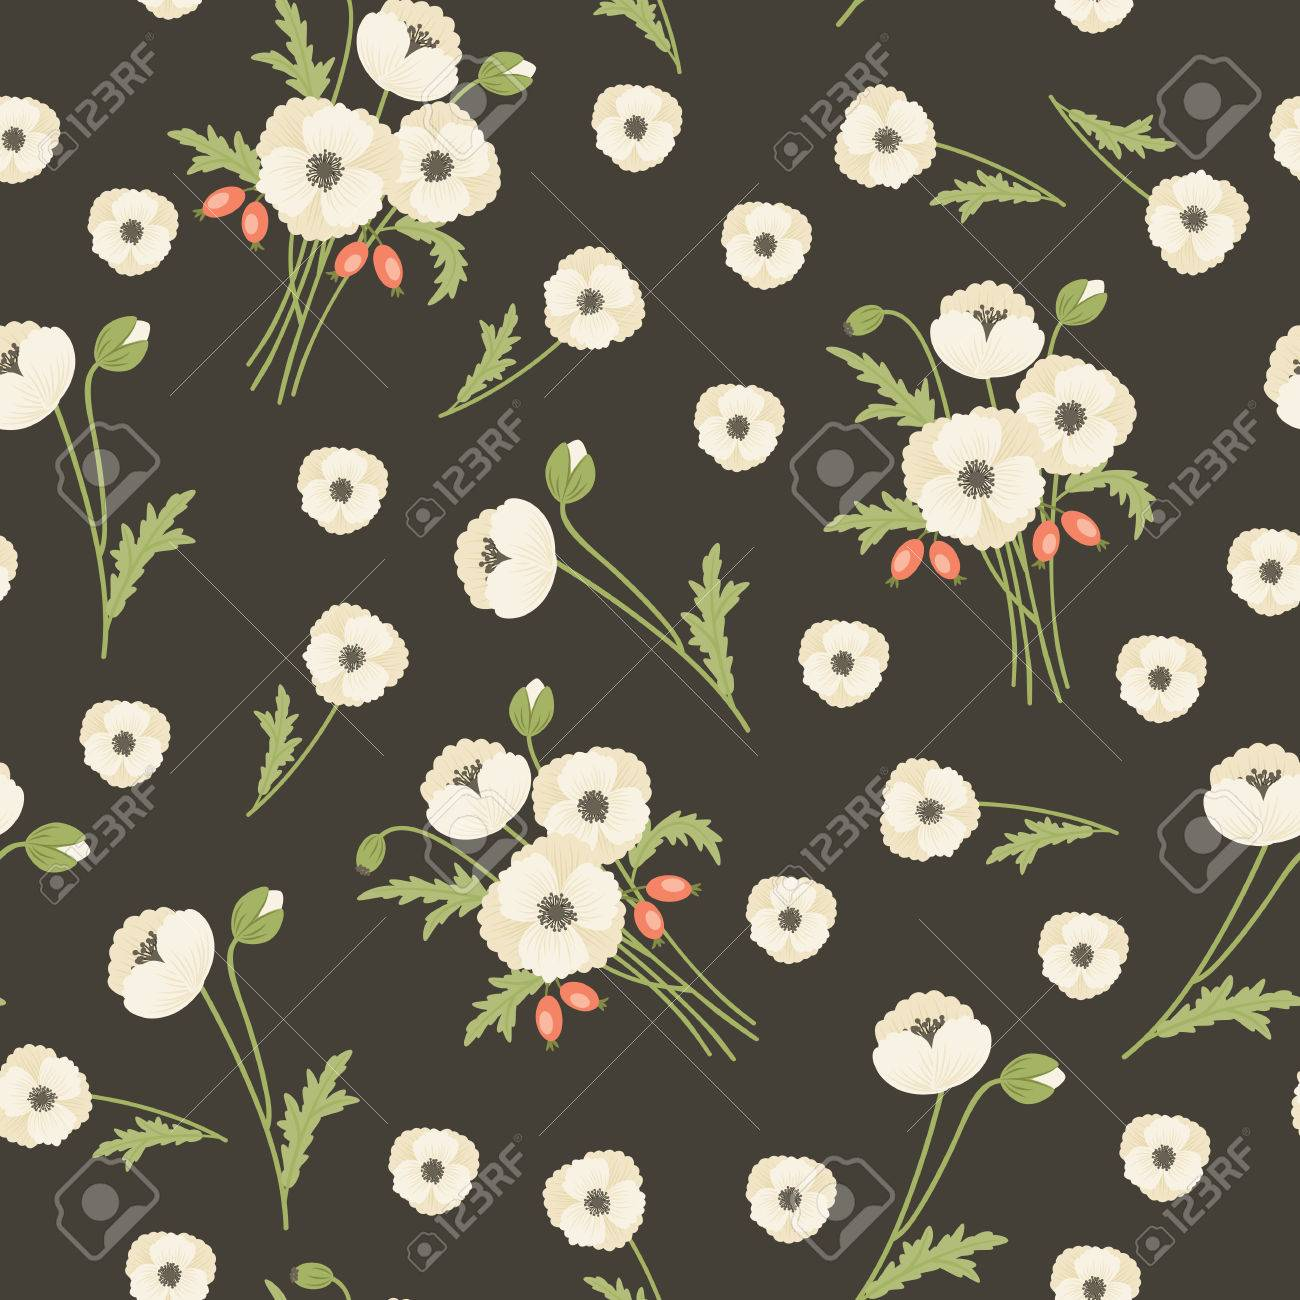 White Poppy Flowers With Leaves On Dark Background Seamless